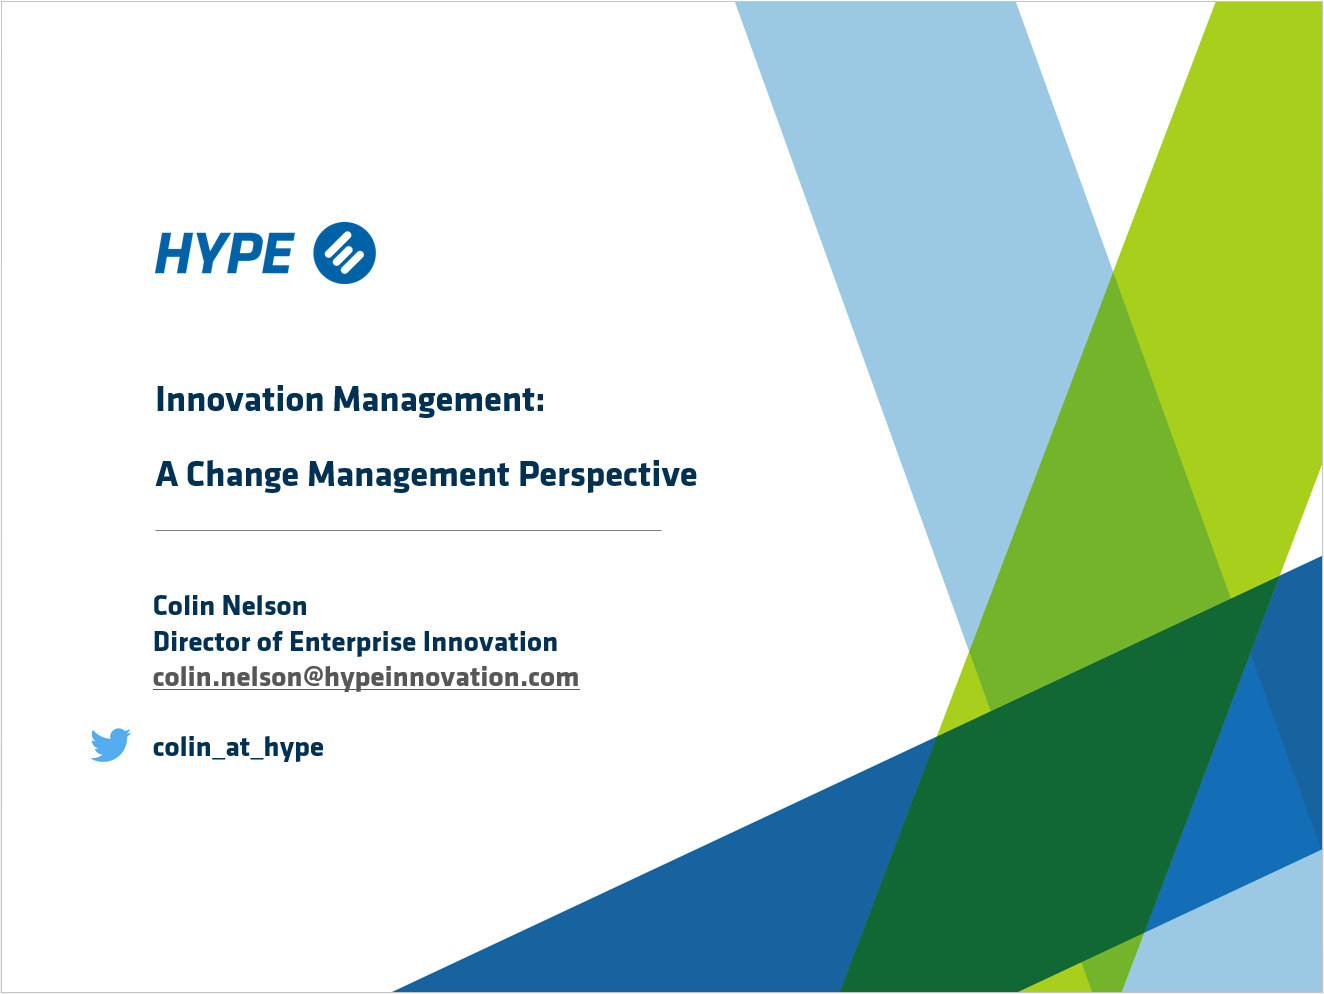 Innovation Management: A Change Management Perspective